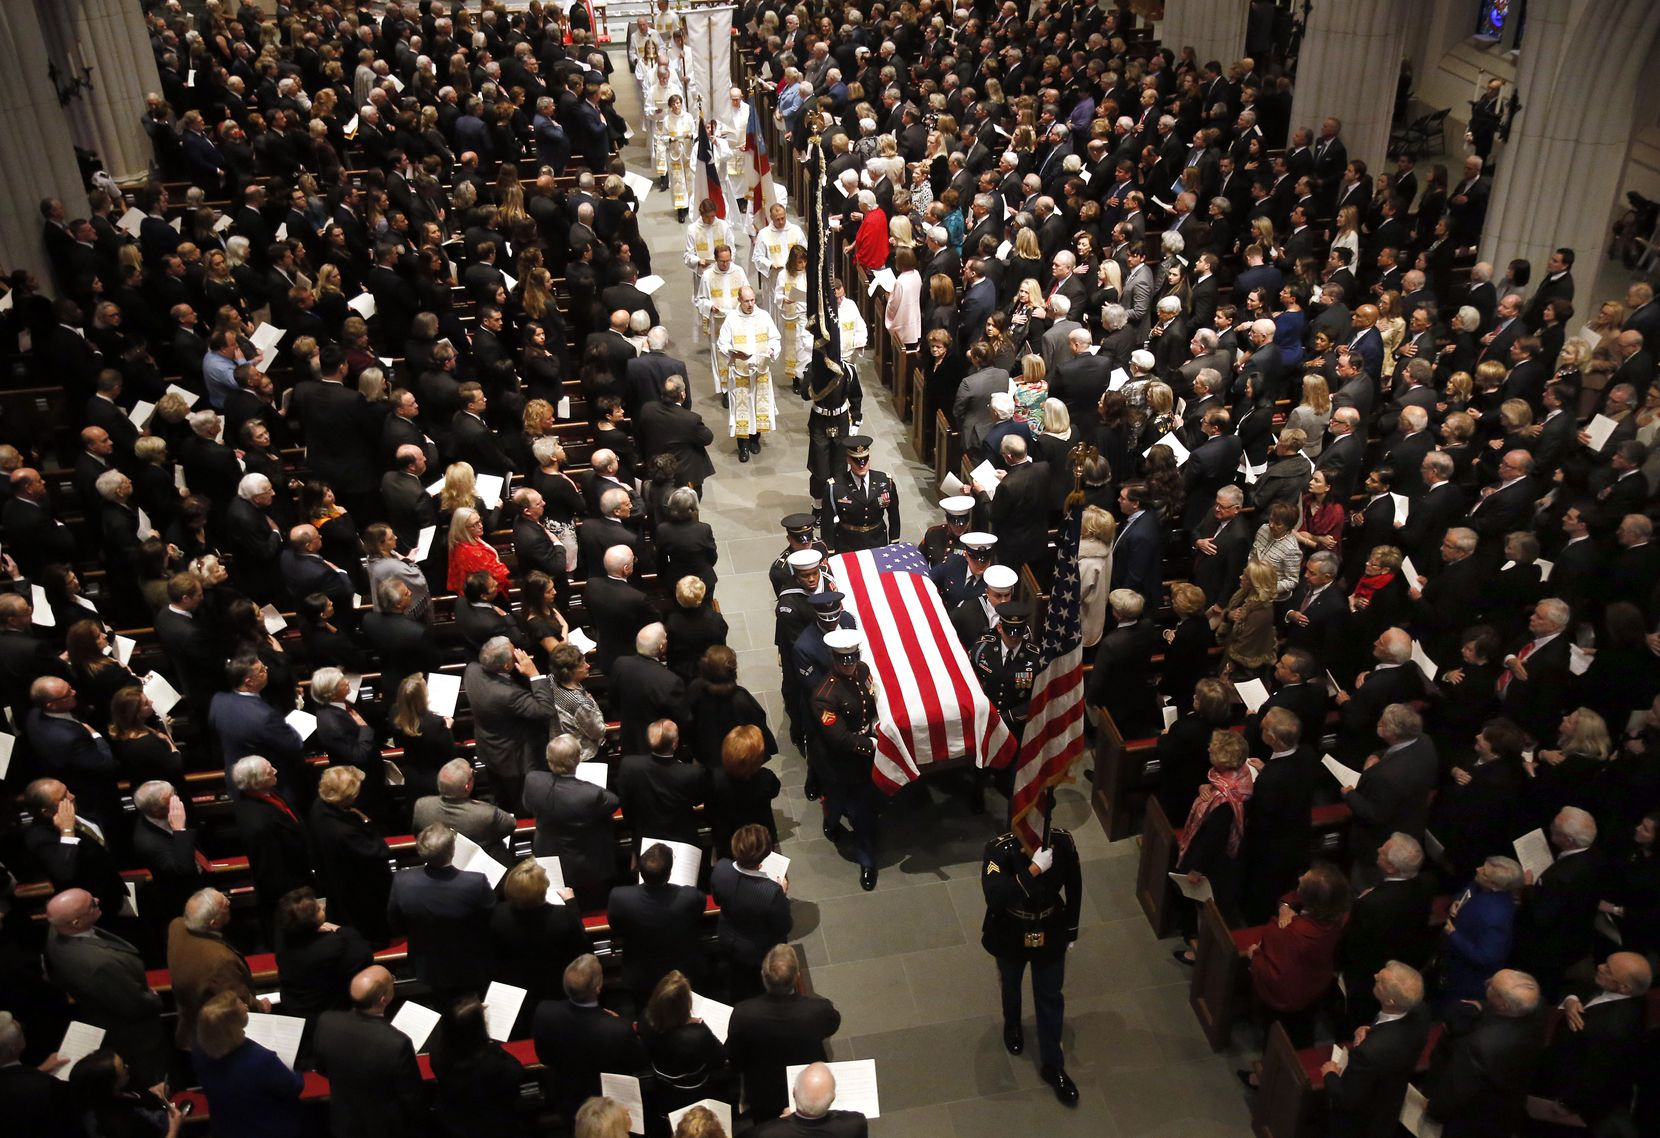 Military pallbearers carry the casket of George H.W. Bush, the 41st President of the United States, during the funeral recessional at St. Martin's Episcopal Church in Houston, Thursday, December 6, 2018. (Tom Fox/The Dallas Morning News)